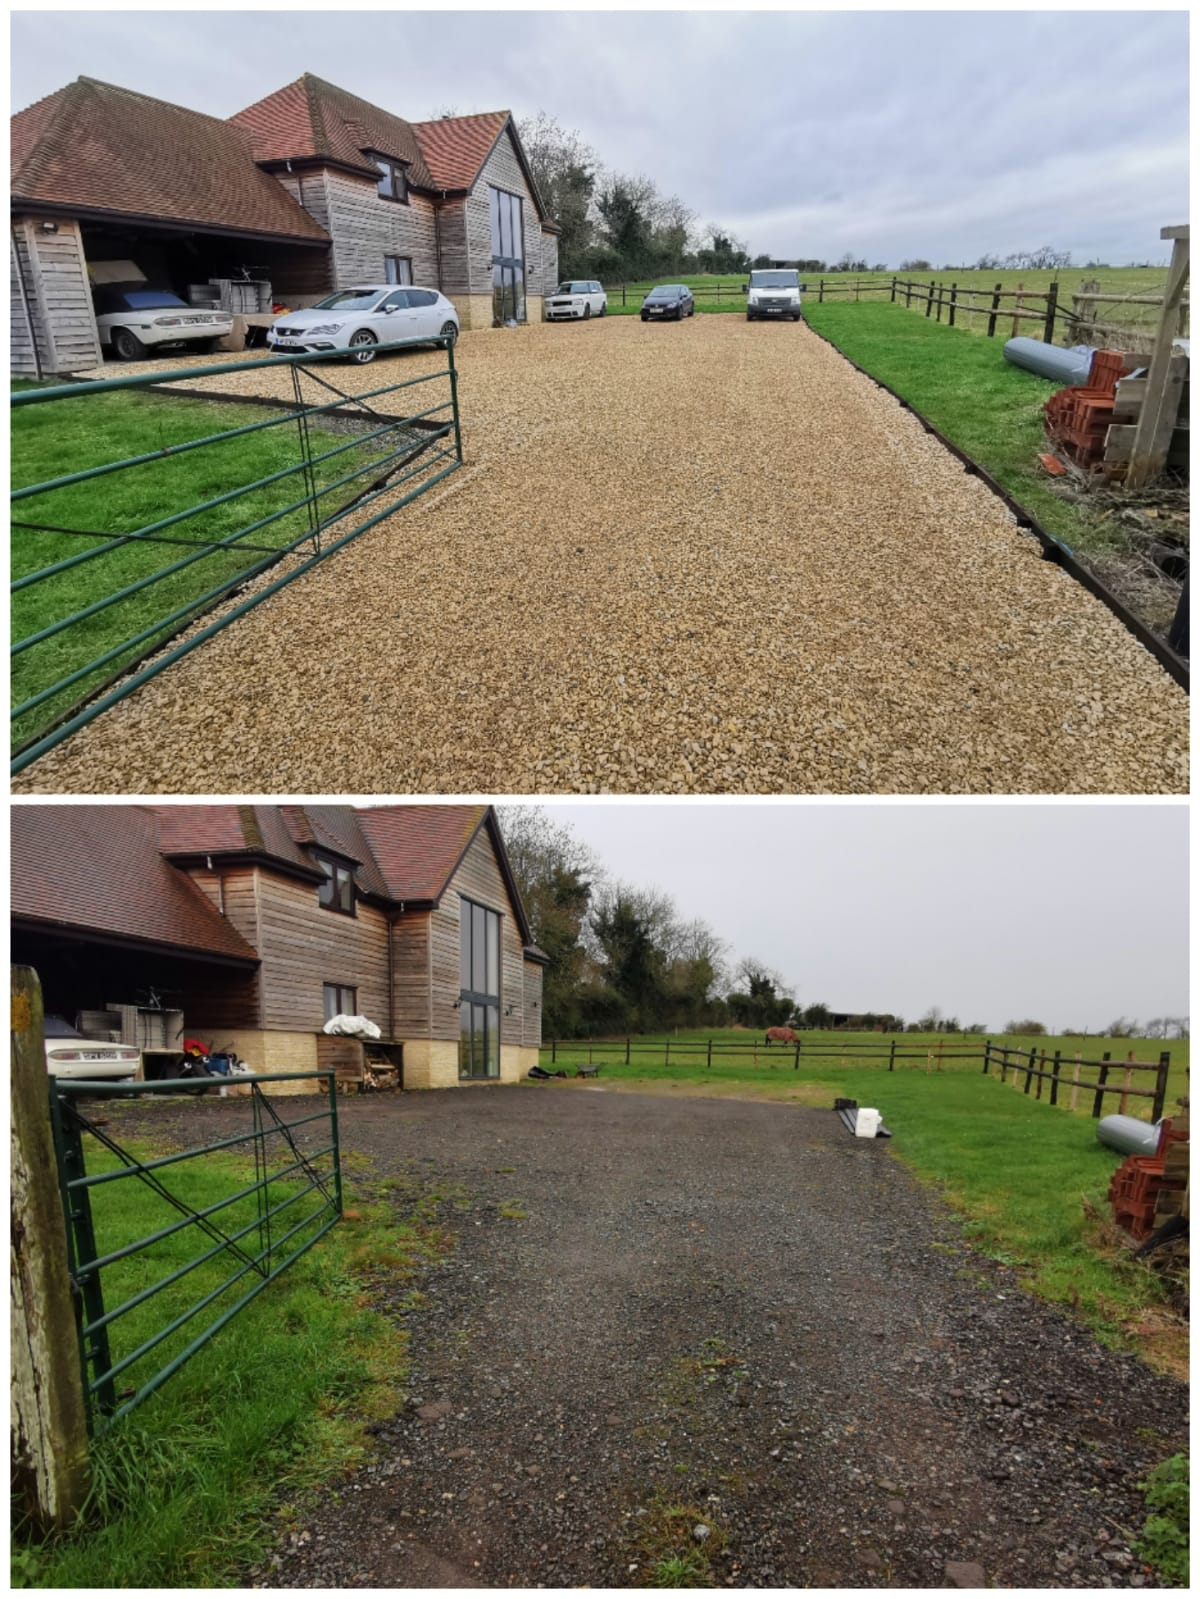 Driveway with timber edging installed and cerney laid in Chicksgrove, Wiltshire